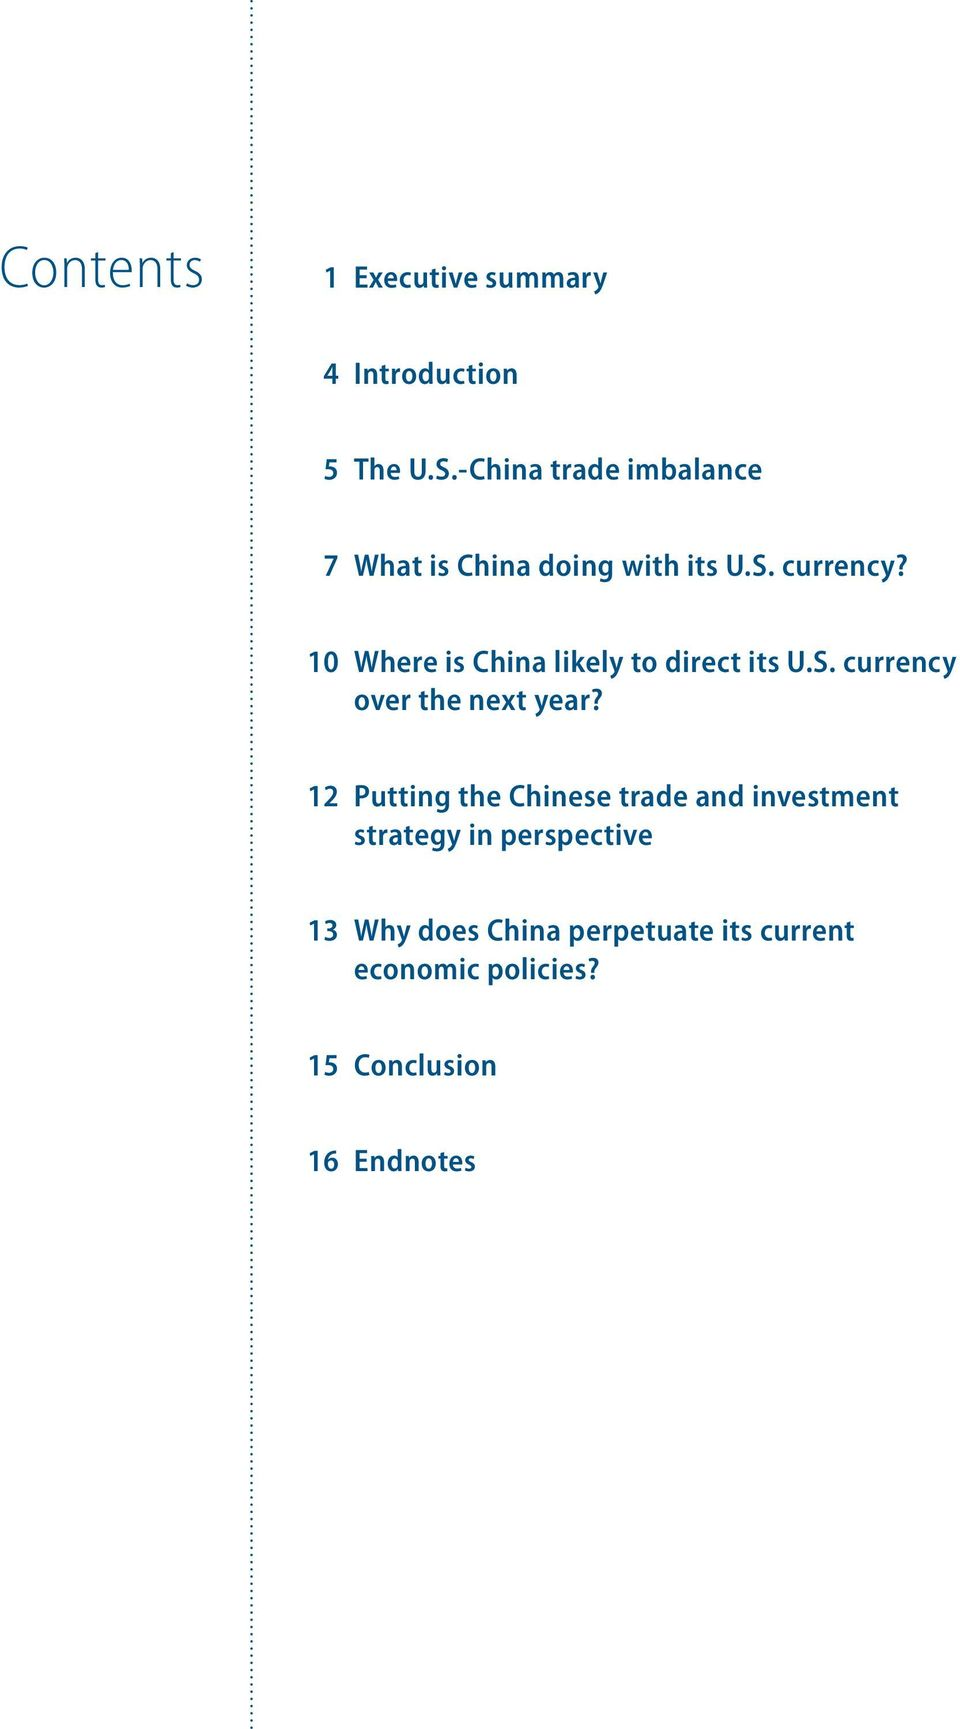 10 Where is China likely to direct its U.S. currency over the next year?